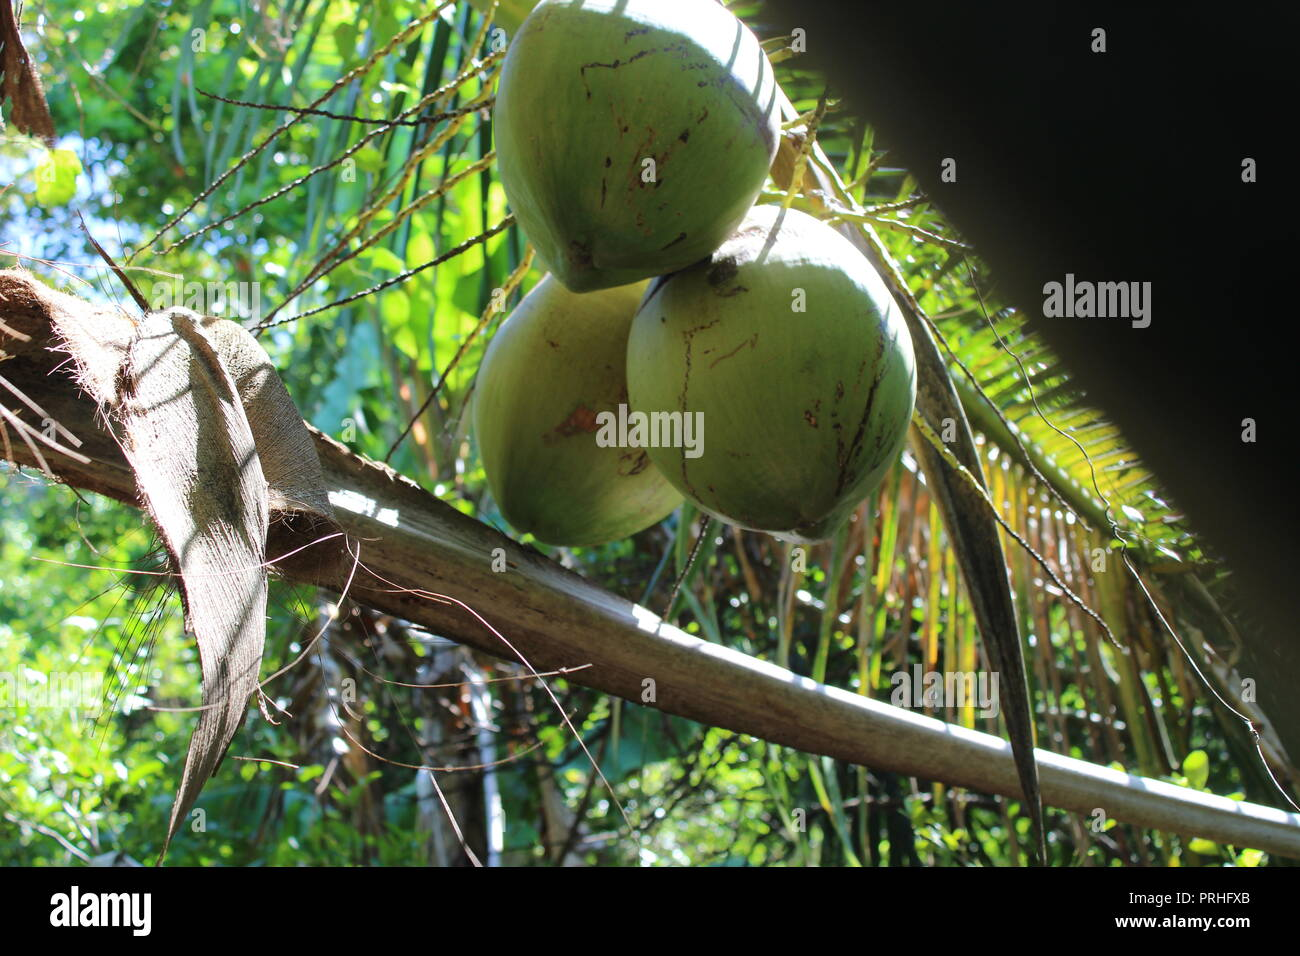 Summer Flora and giant Coconut - Stock Image